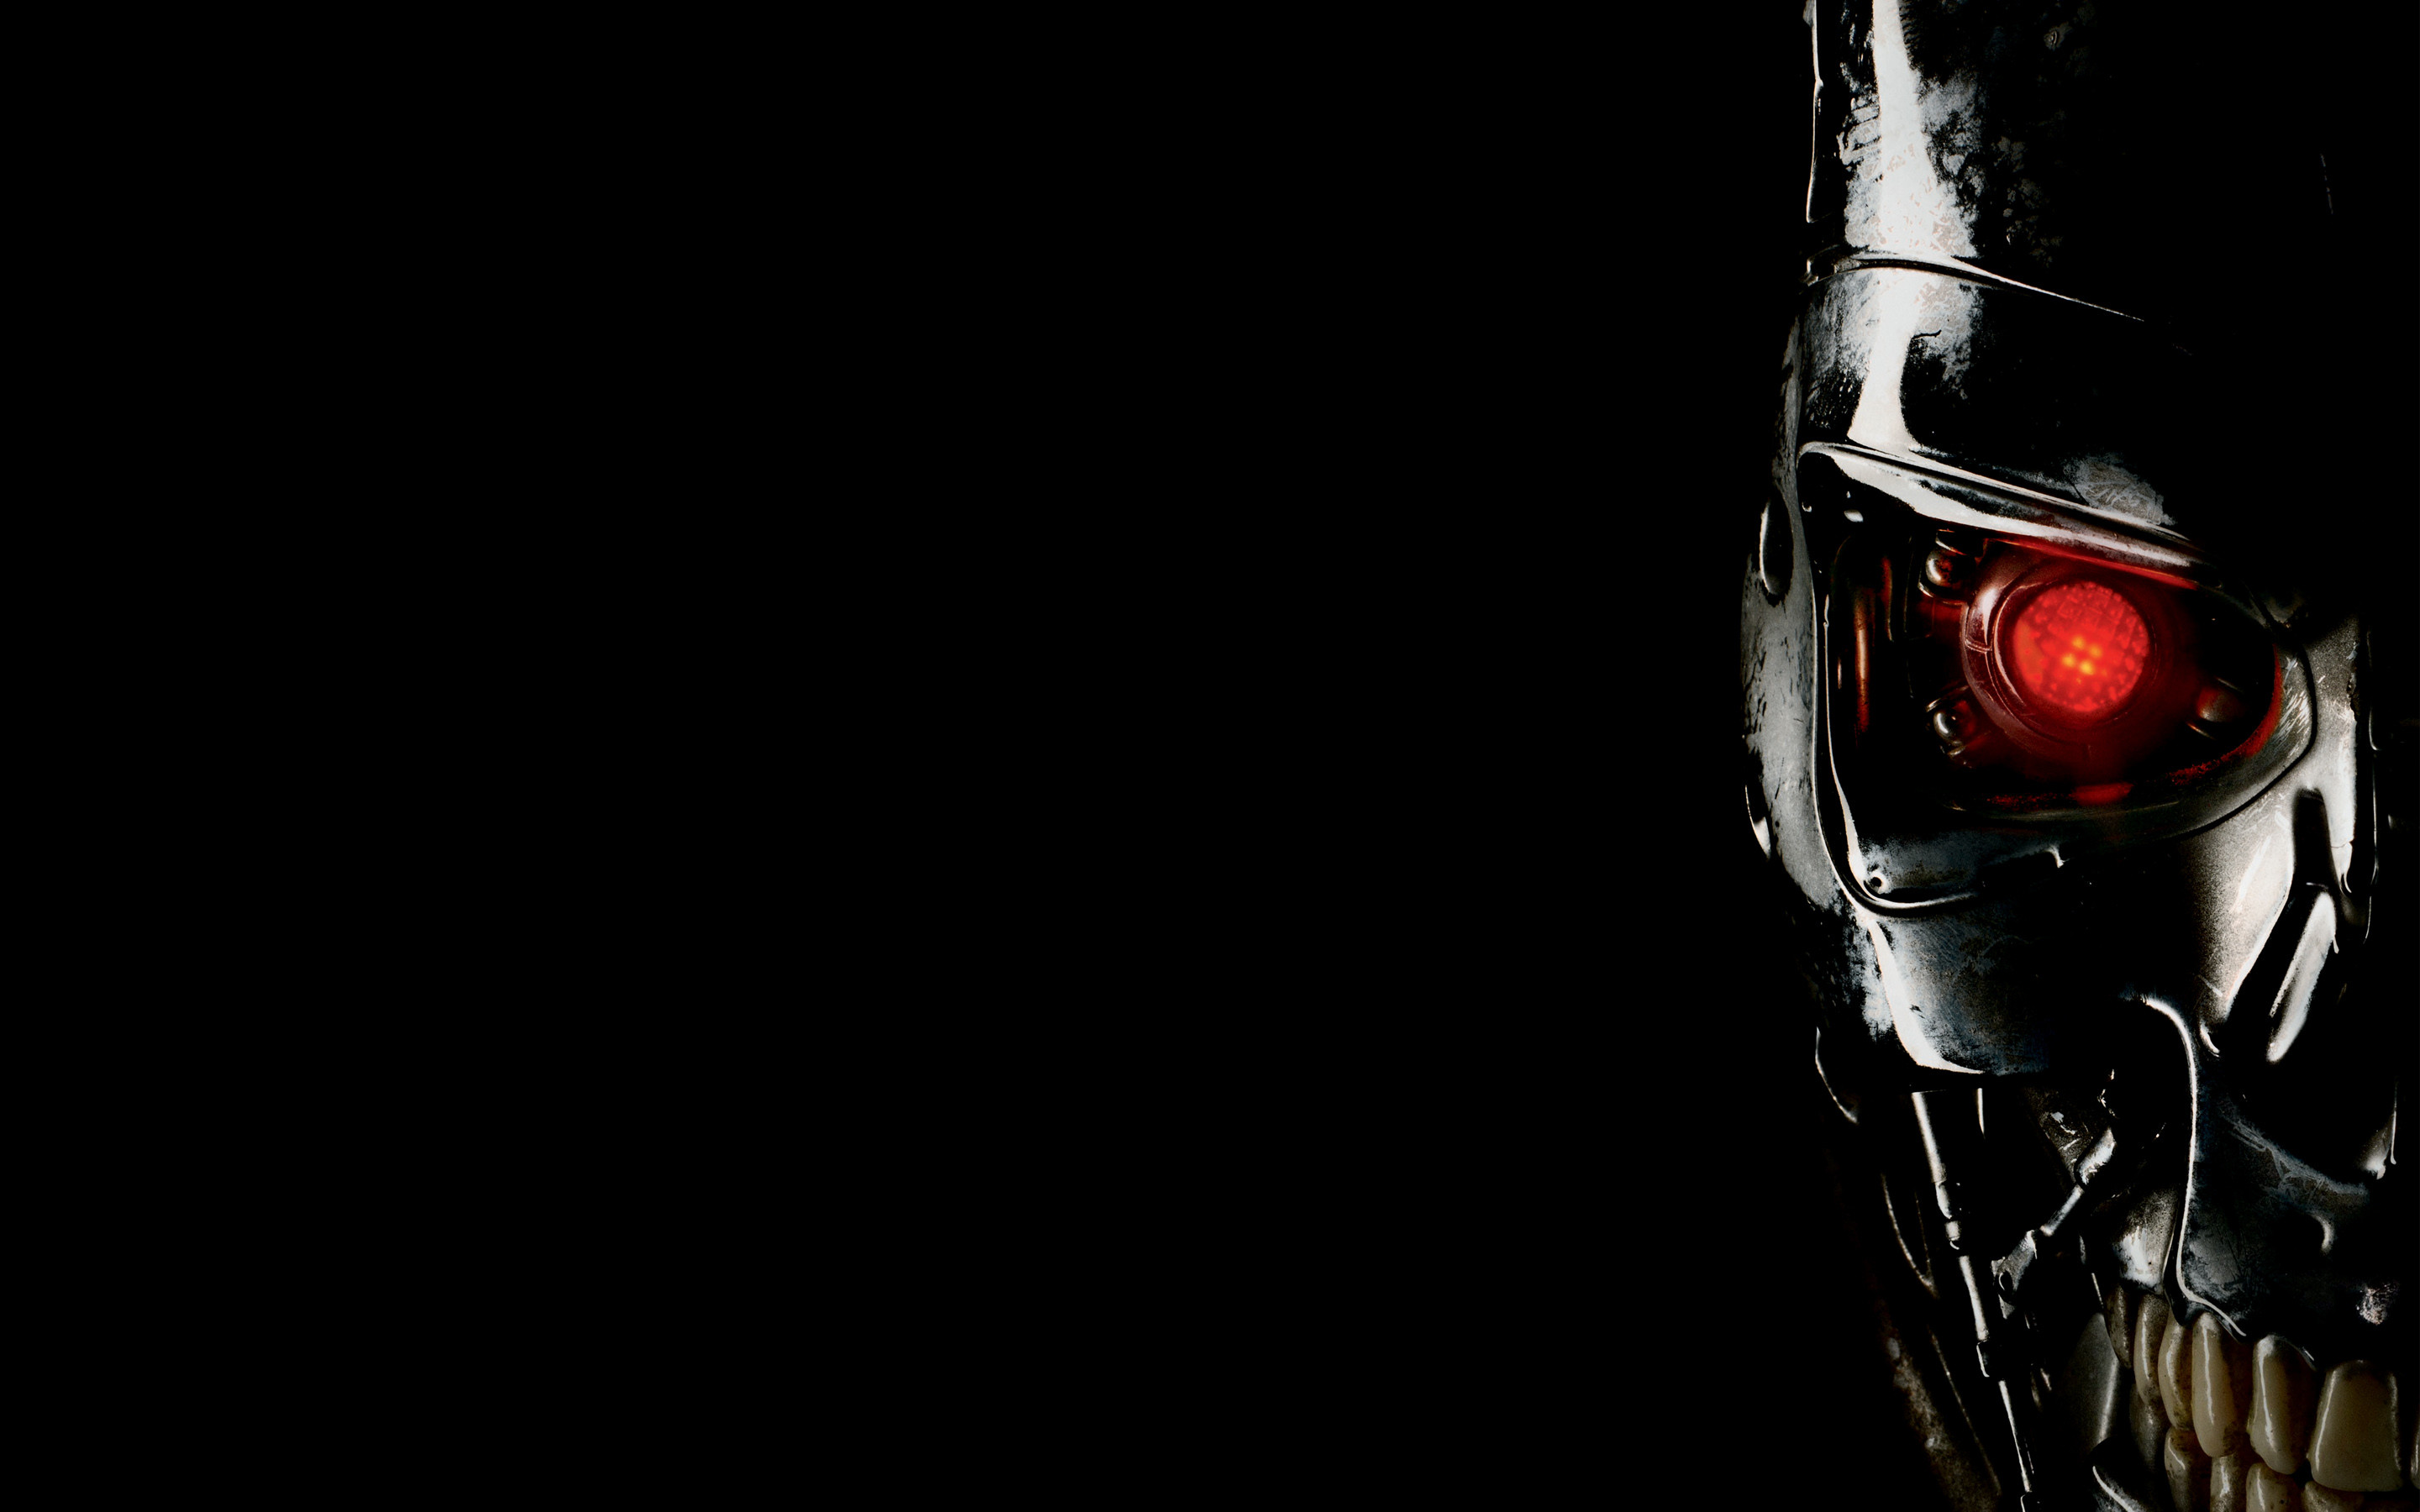 2880x1800 Terminator Genisys Wallpaper Desktop